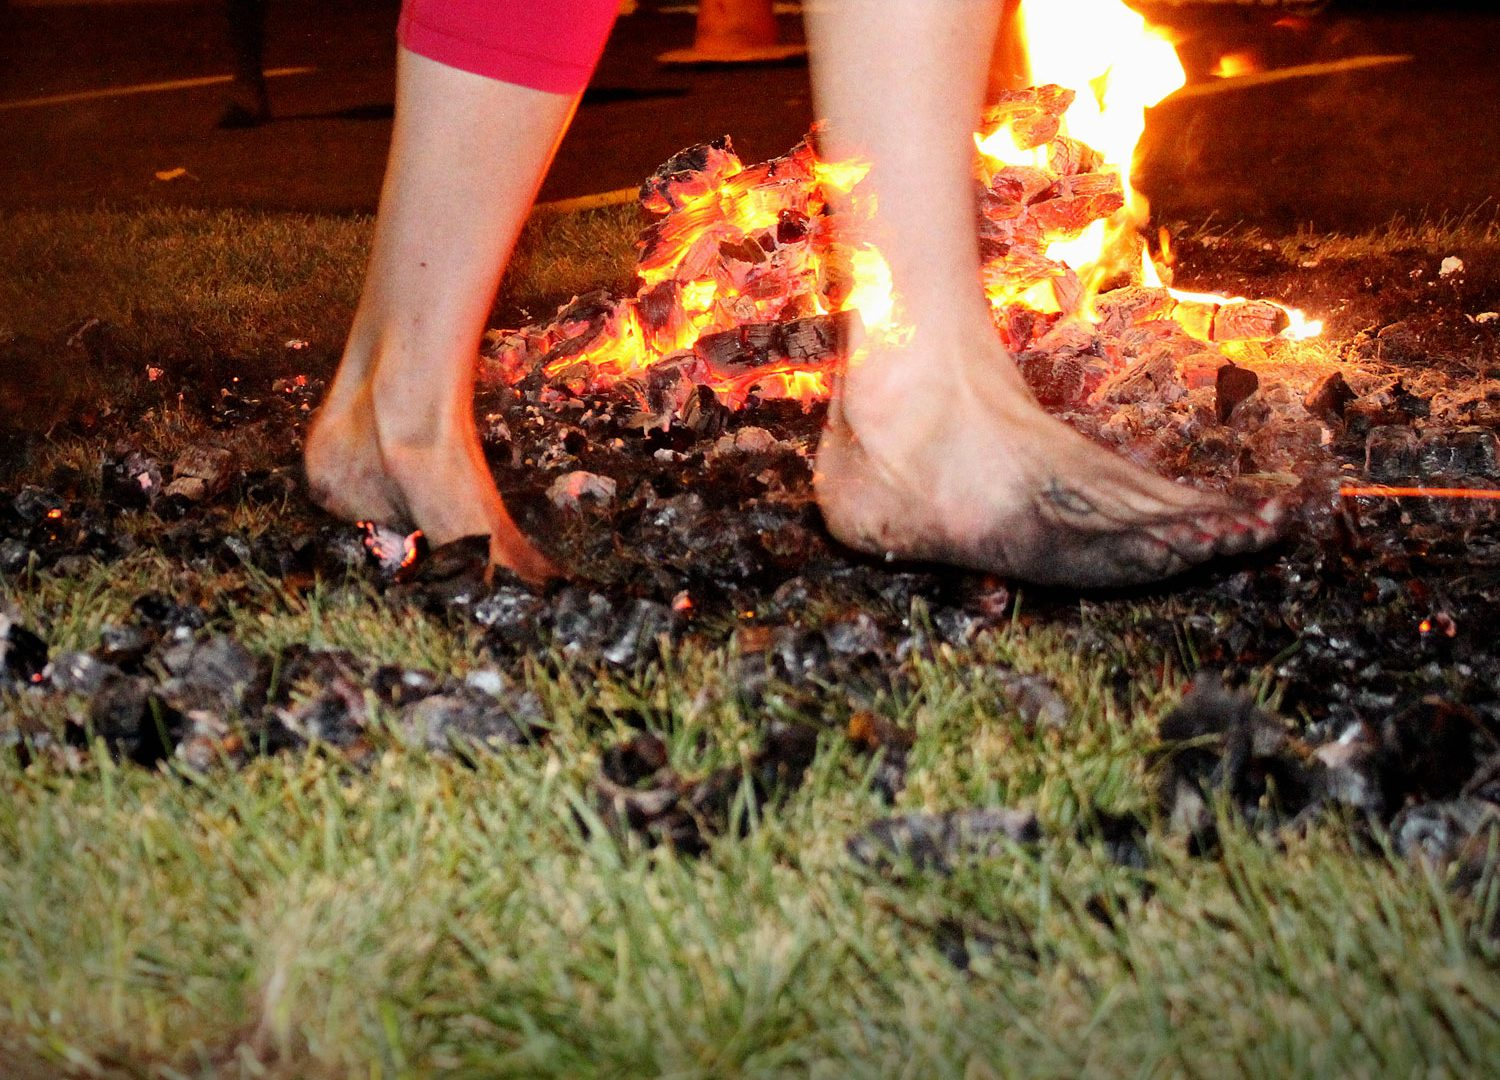 My First Firewalk